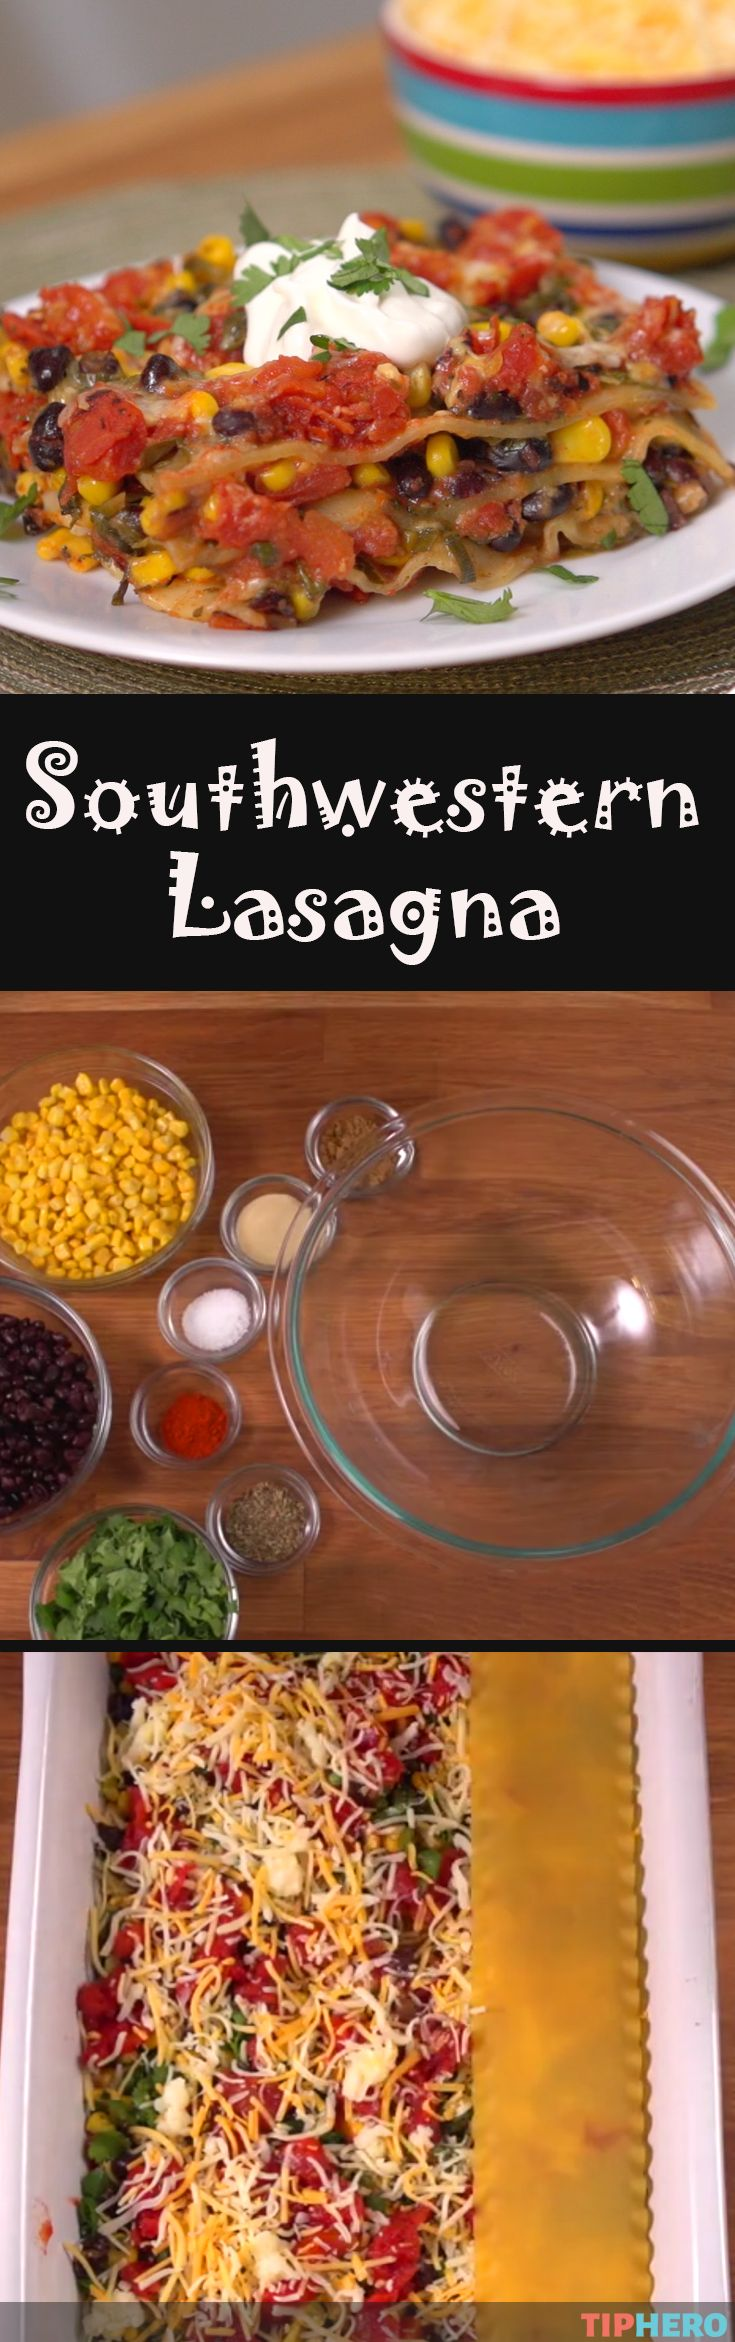 Southwestern Lasagna Recipe | Put a south of the border spin on the traditional Italian lasagna with layers of black beans, corn, onions, fire roasted tomatoes and some southwestern spice in between your lasagna noodles (or swap in some tortillas instead!). It's designed as a vegetarian dish, but you can add some taco meat to beef it up so to speak.... #familydinner #homecooking #spicy #cookingwithkids